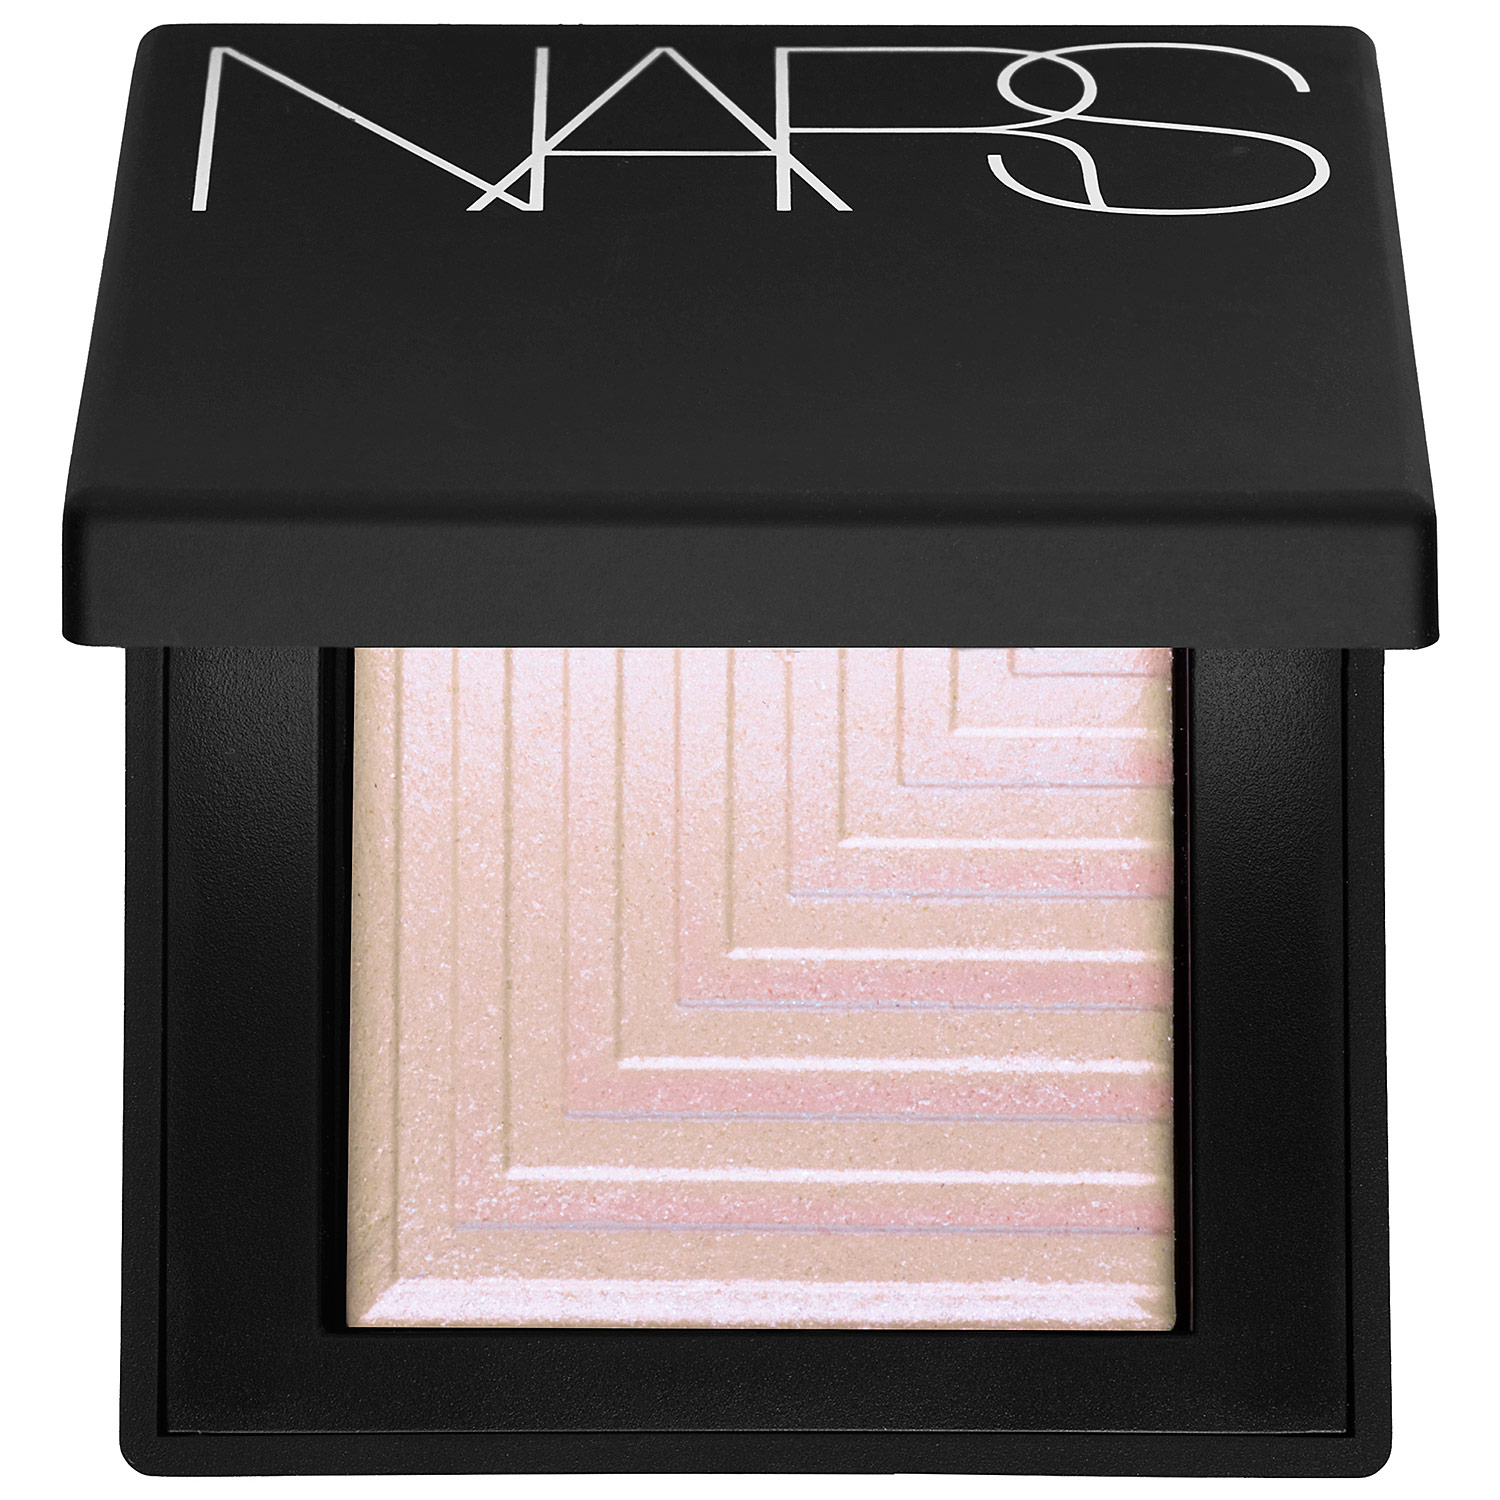 Very Fair Complexions:Nars Dual-Intensity Eyeshadow in Cassiopeia